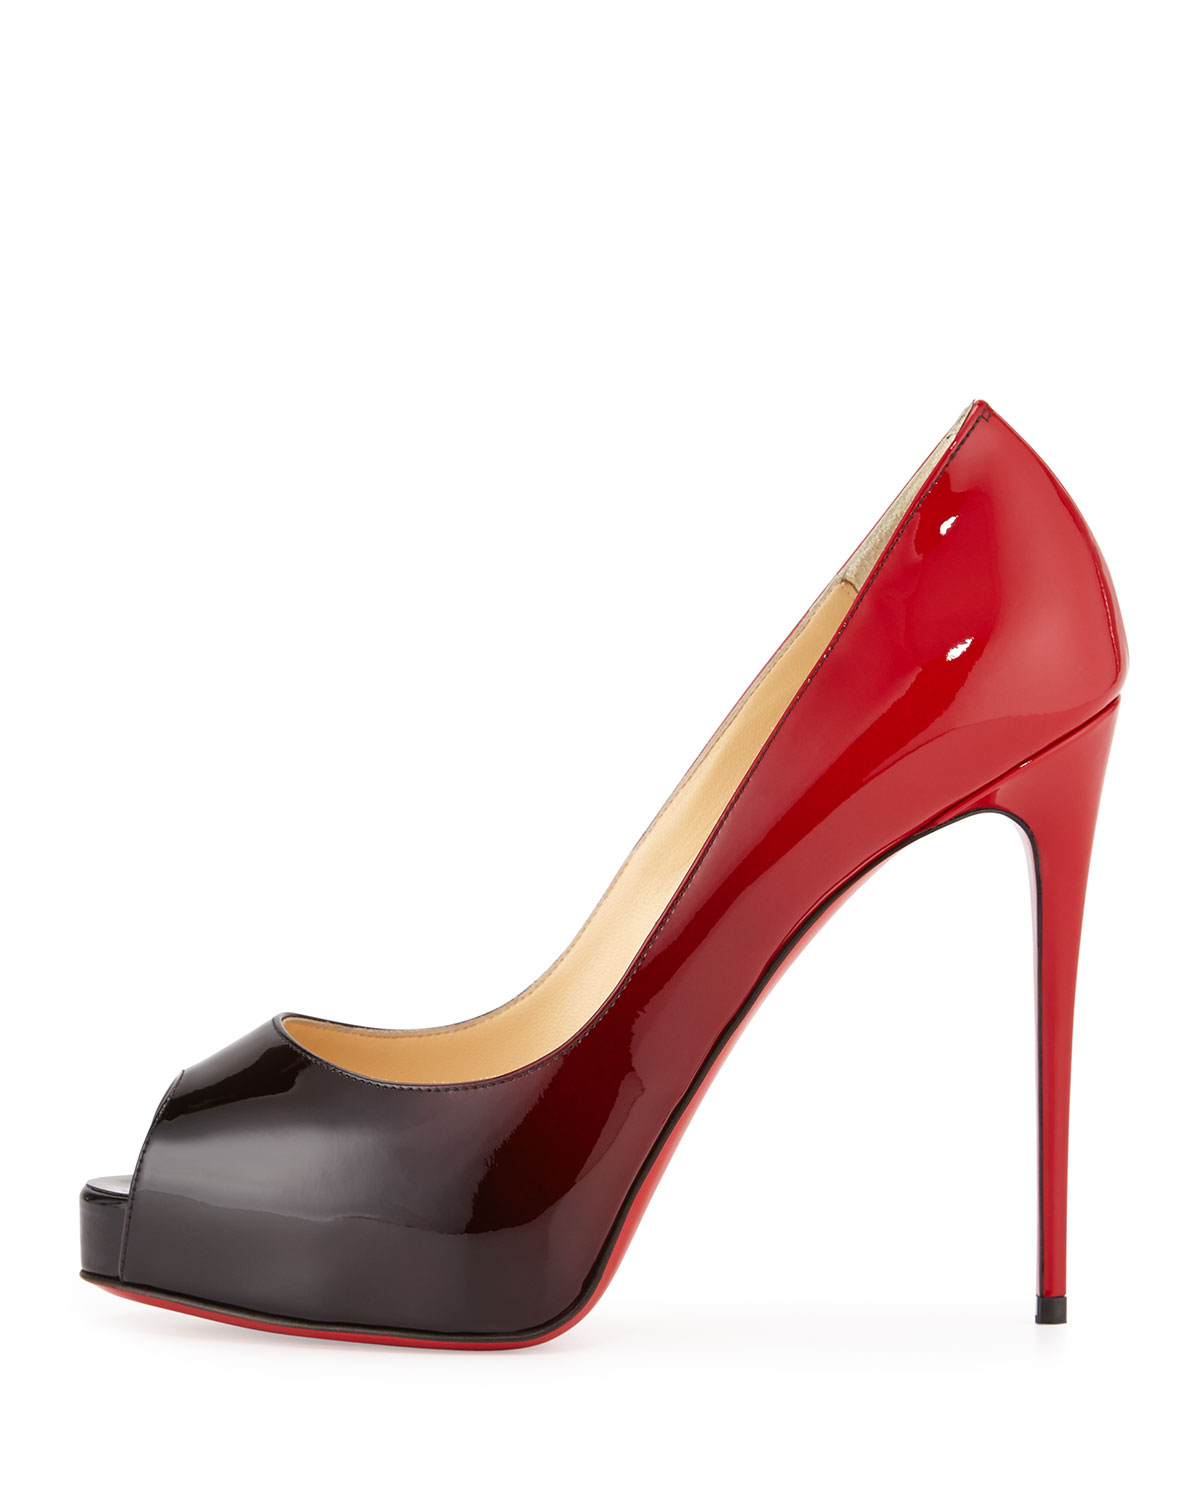 eac95d297372 ... cheap lyst christian louboutin new very prive ombre peep toe red sole  0bbb1 f7d02